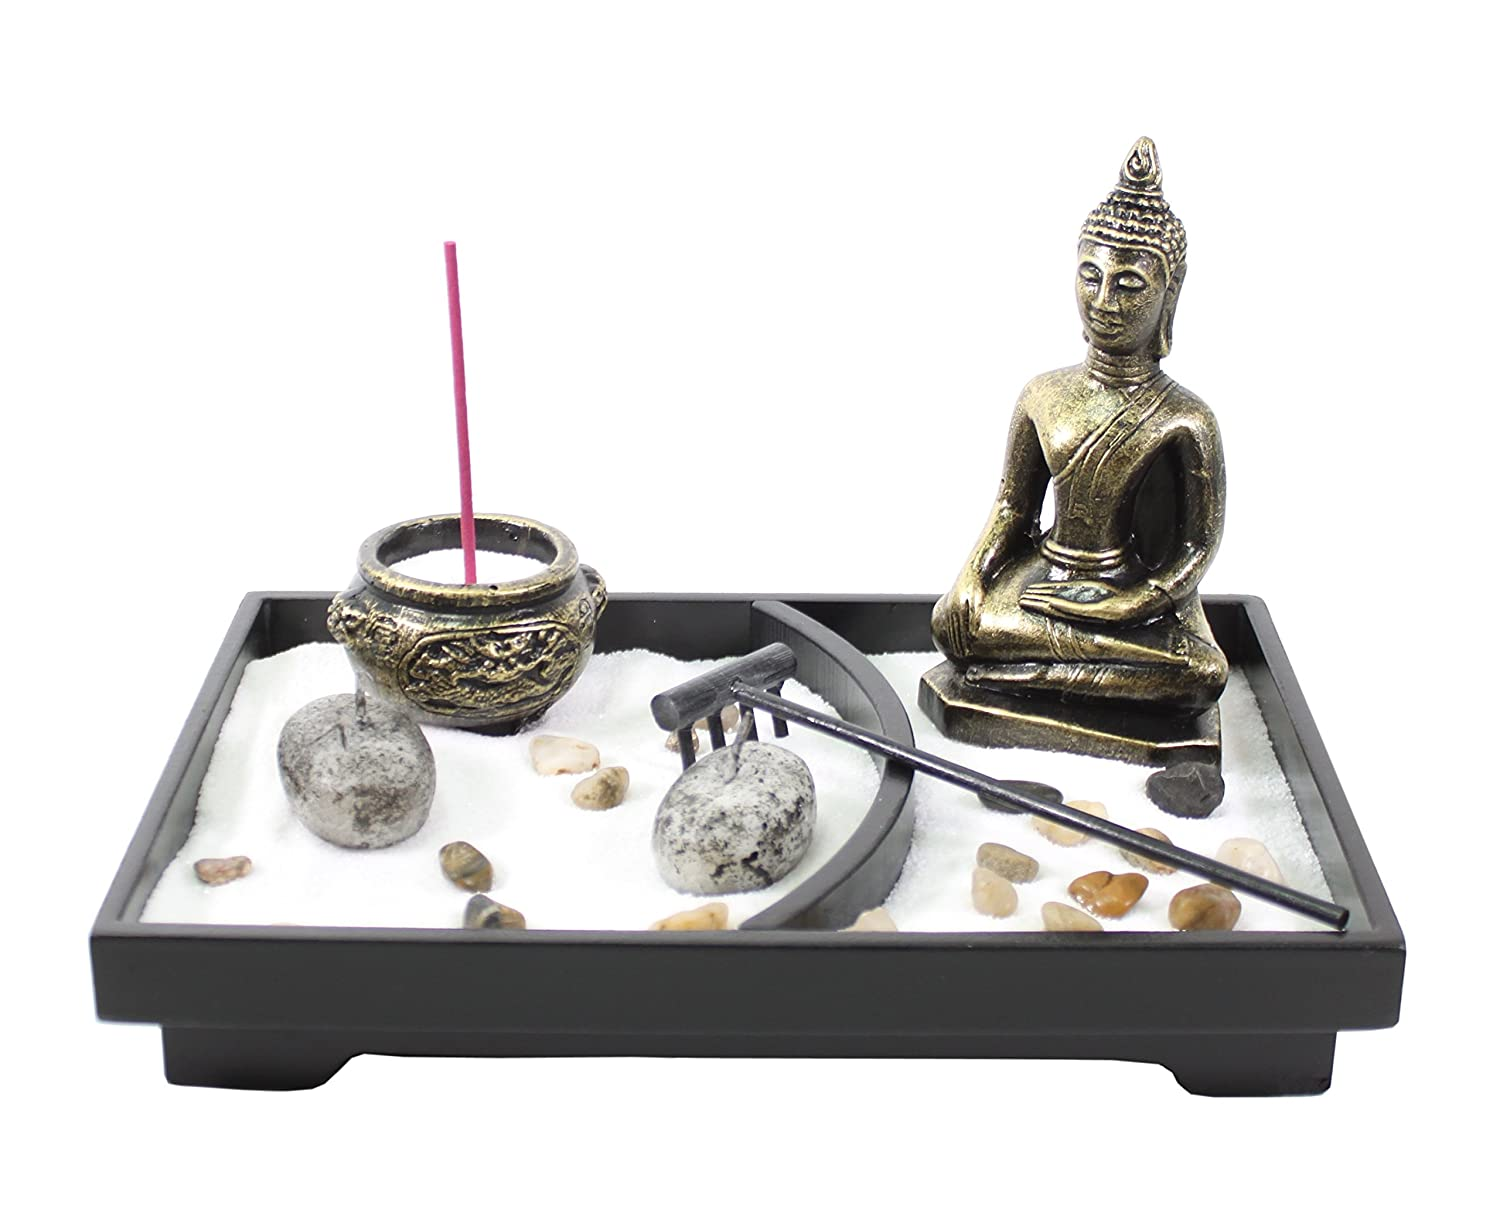 Tabletop Zen Garden Buddha Rock Rake Sand Candle Incense Burner Home Decor Gift